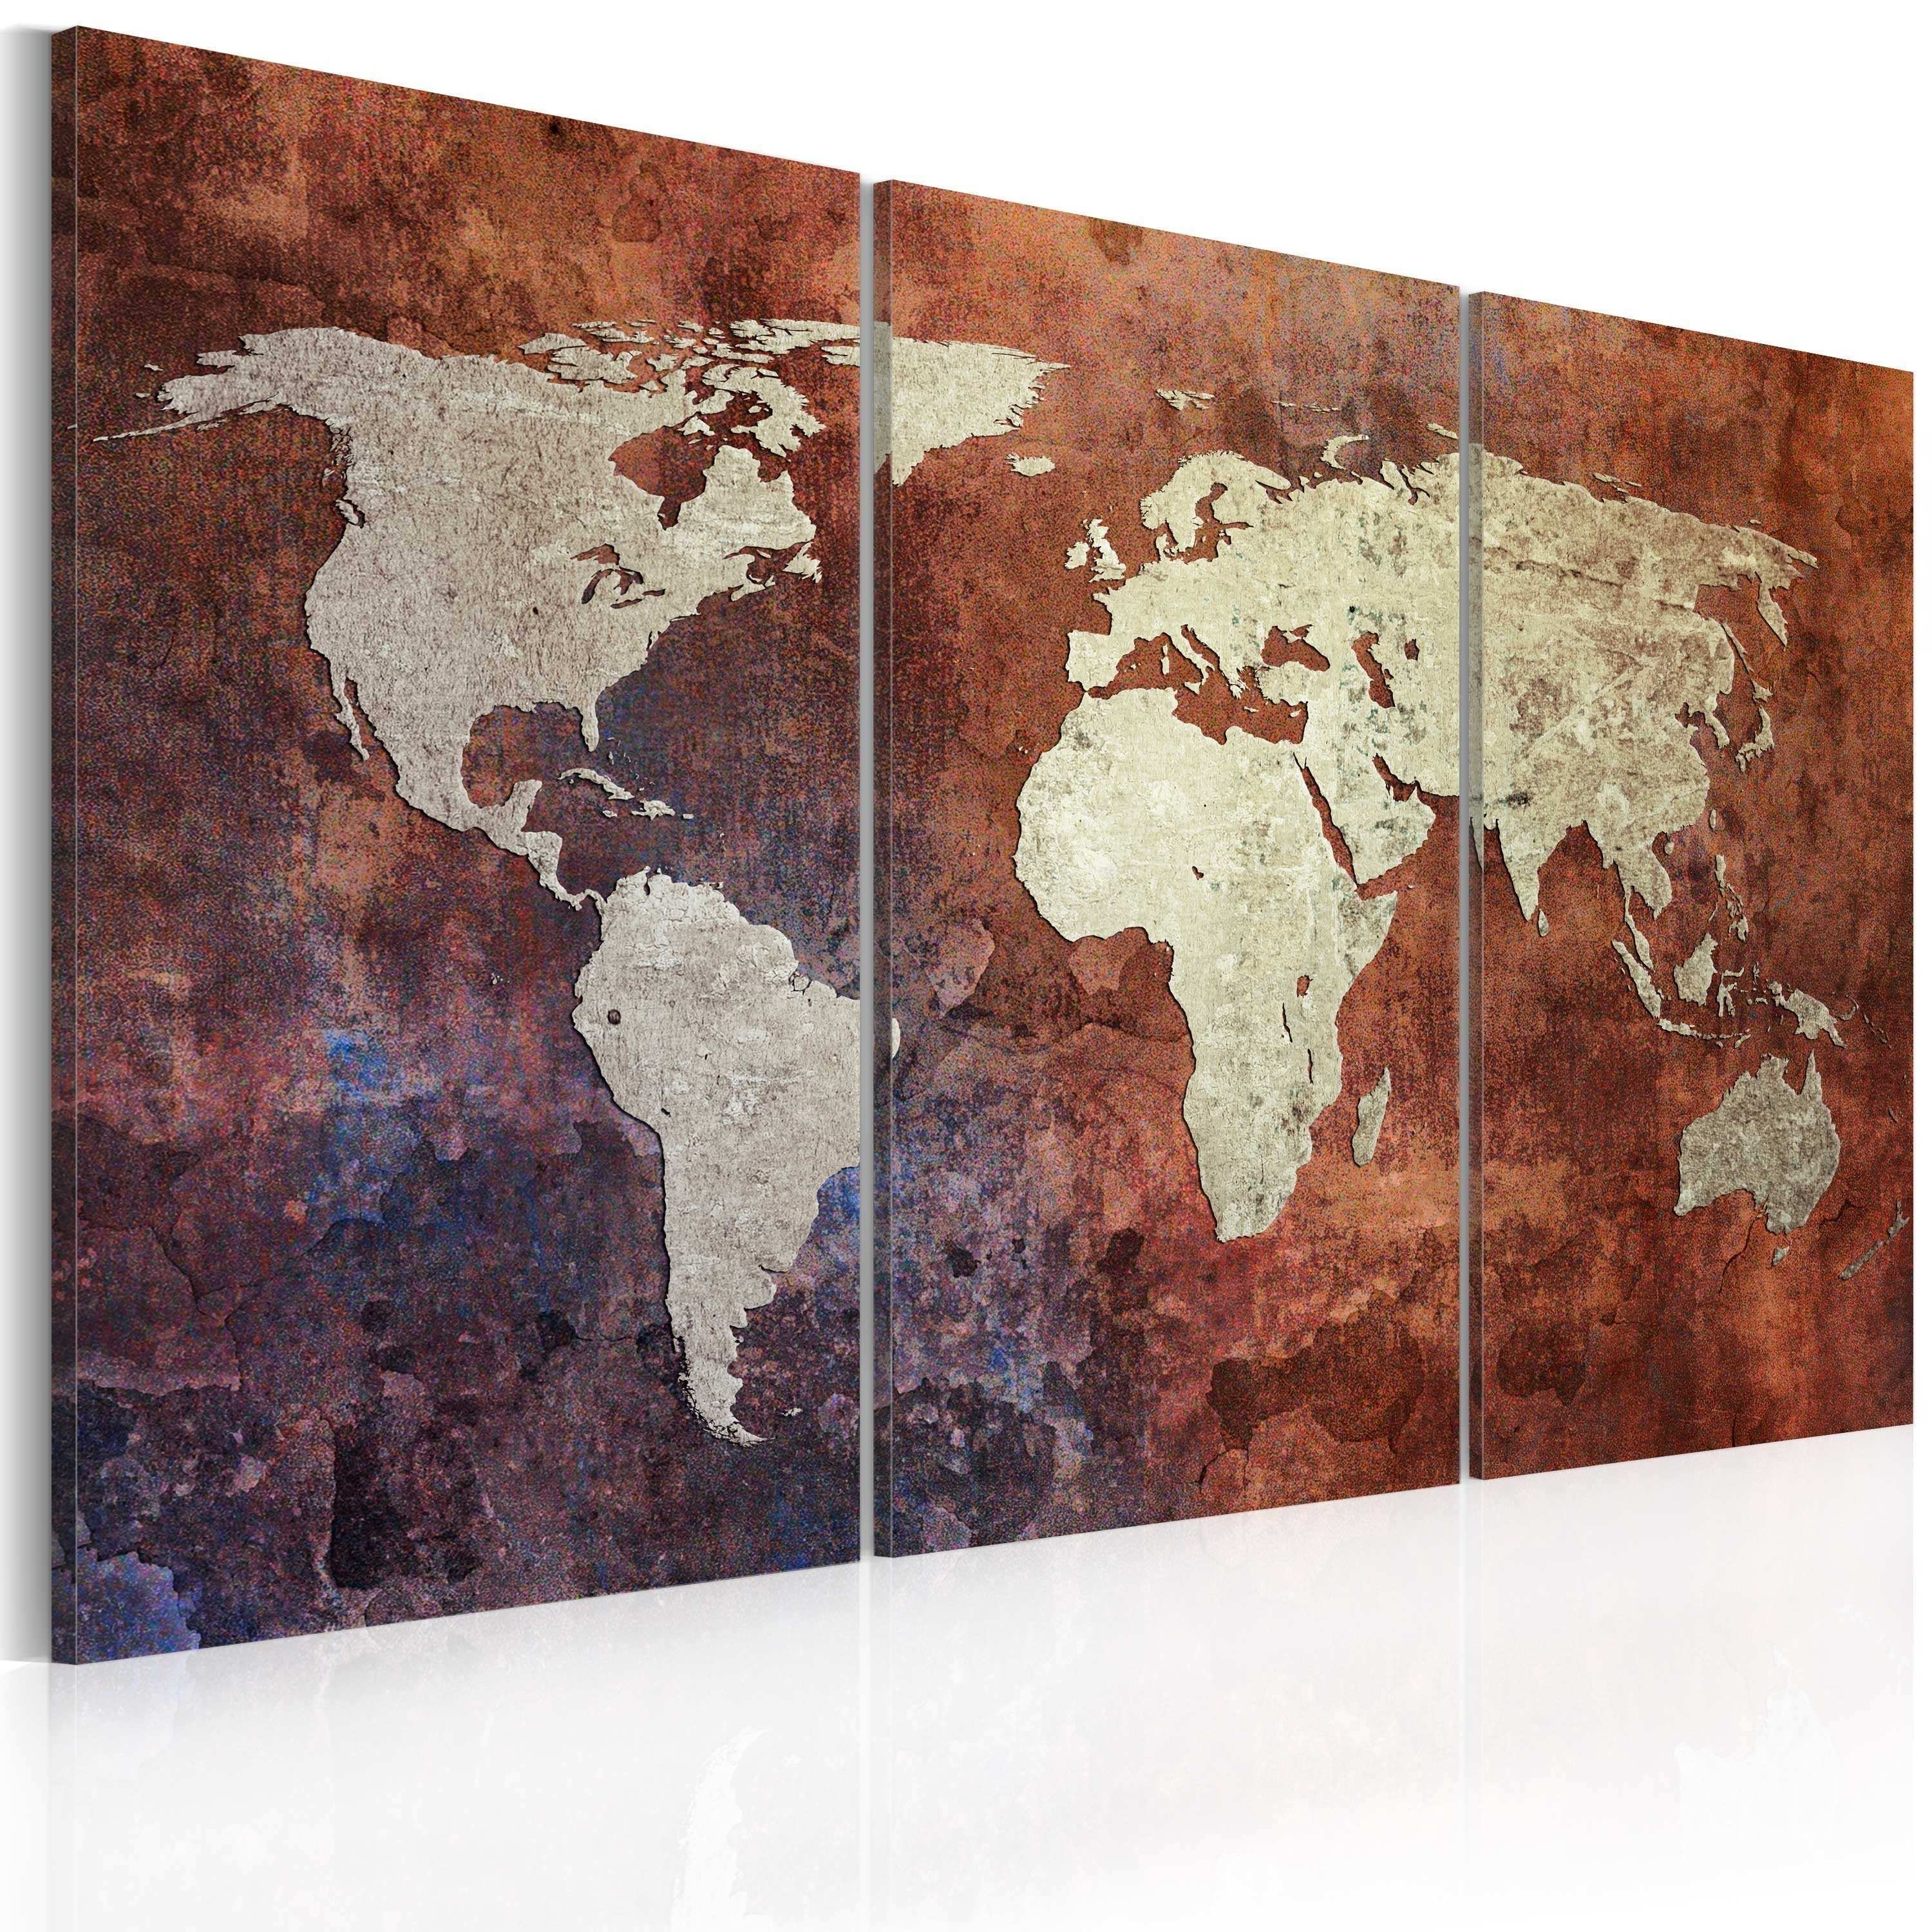 World Market Metal Wall Art Beautiful Canvas Print Rusty Map Of The Intended For World Market Wall Art (View 2 of 20)